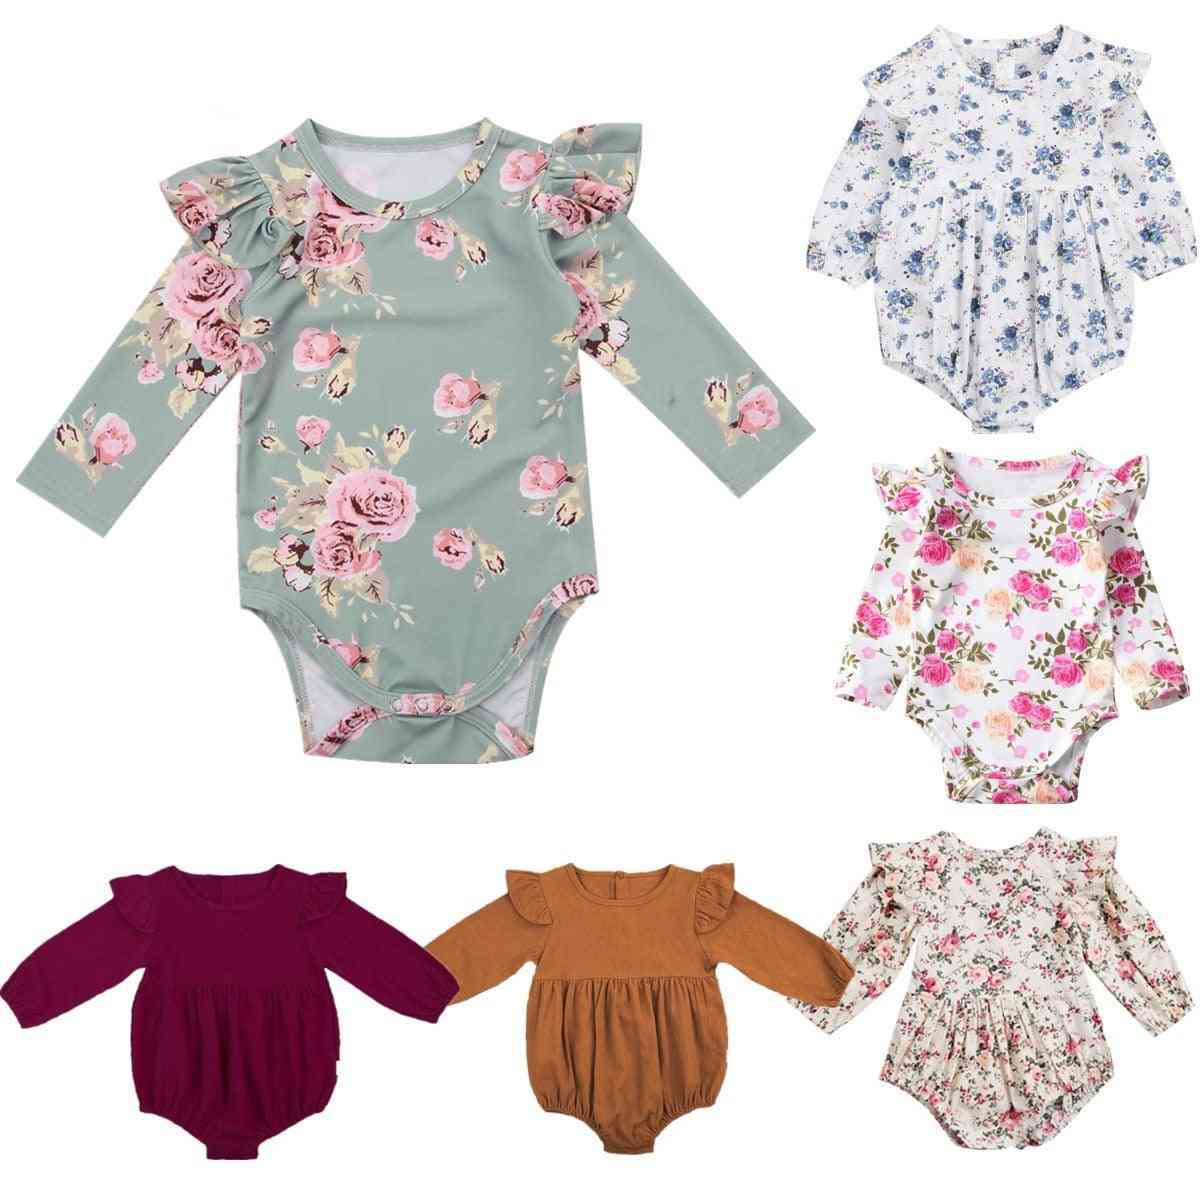 Long Butterfly Sleeve Romper, Outfits Playsuit, Jumpsuit Floral Clothes